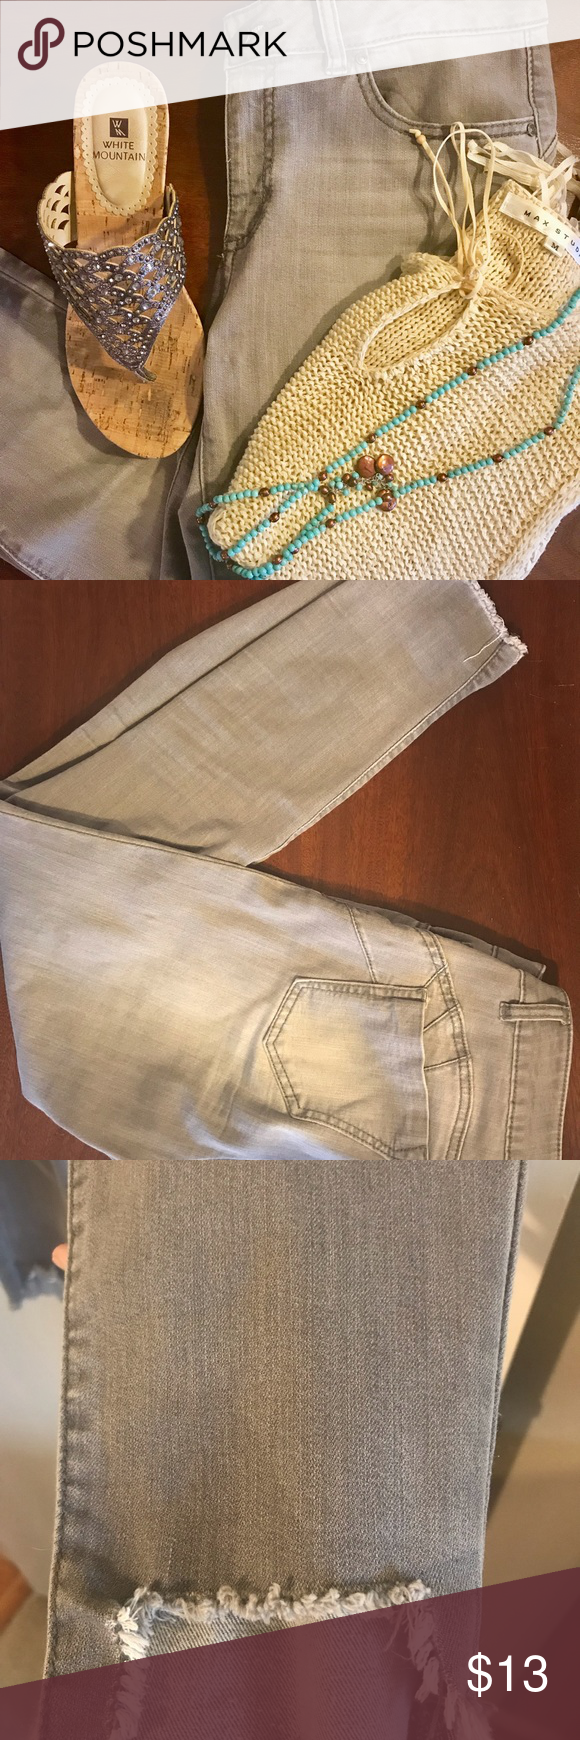 Gray Distressed Jeans Cute Skinny Jeans With Frayed Ankle Worn Very Little Great Condition Miss Poured In With Images Metallic Shoes Distressed Jeans Michael Kors Tops